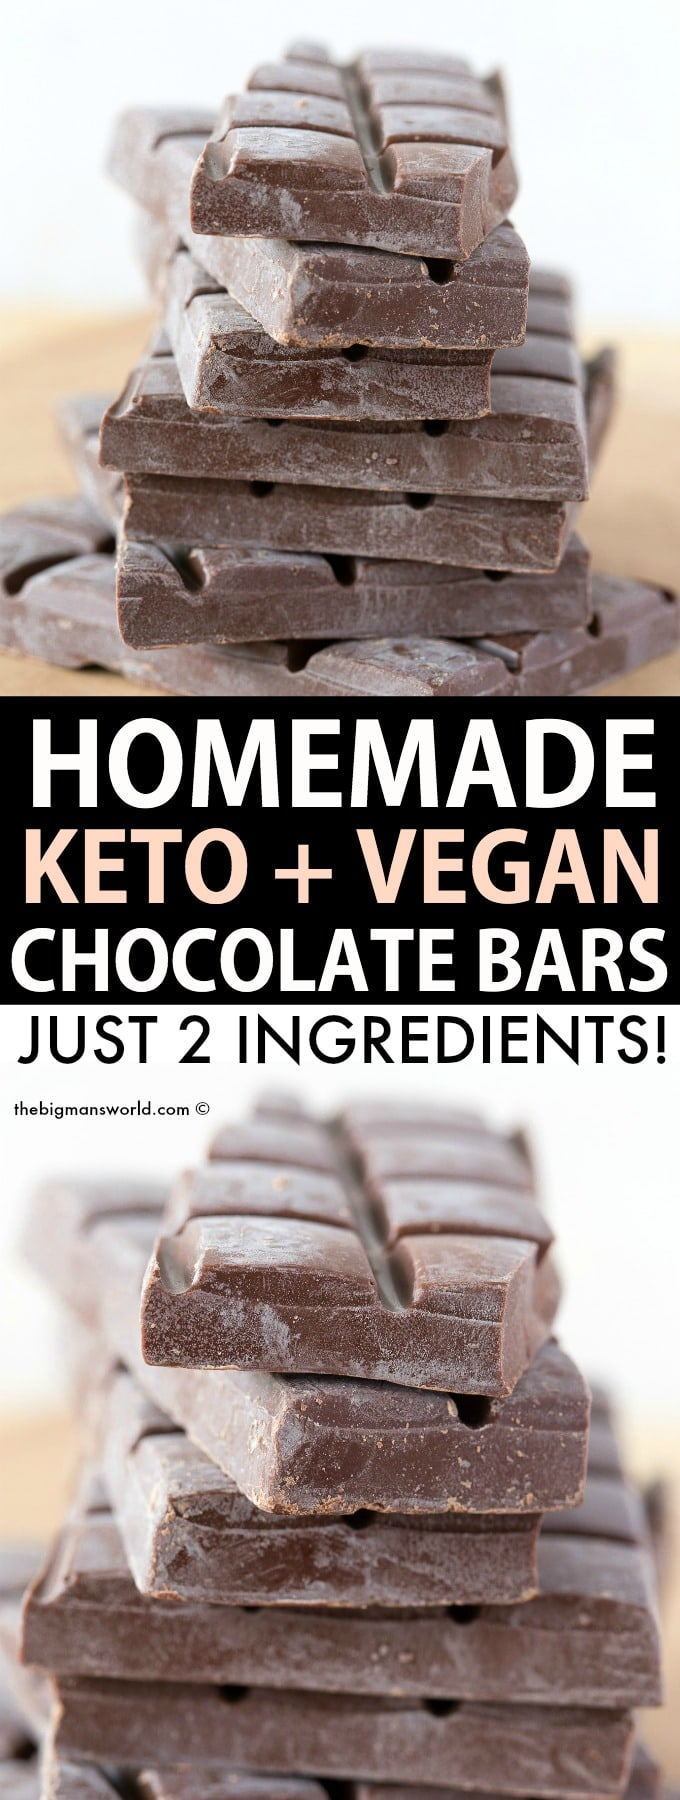 Homemade keto chocolate bars recipe